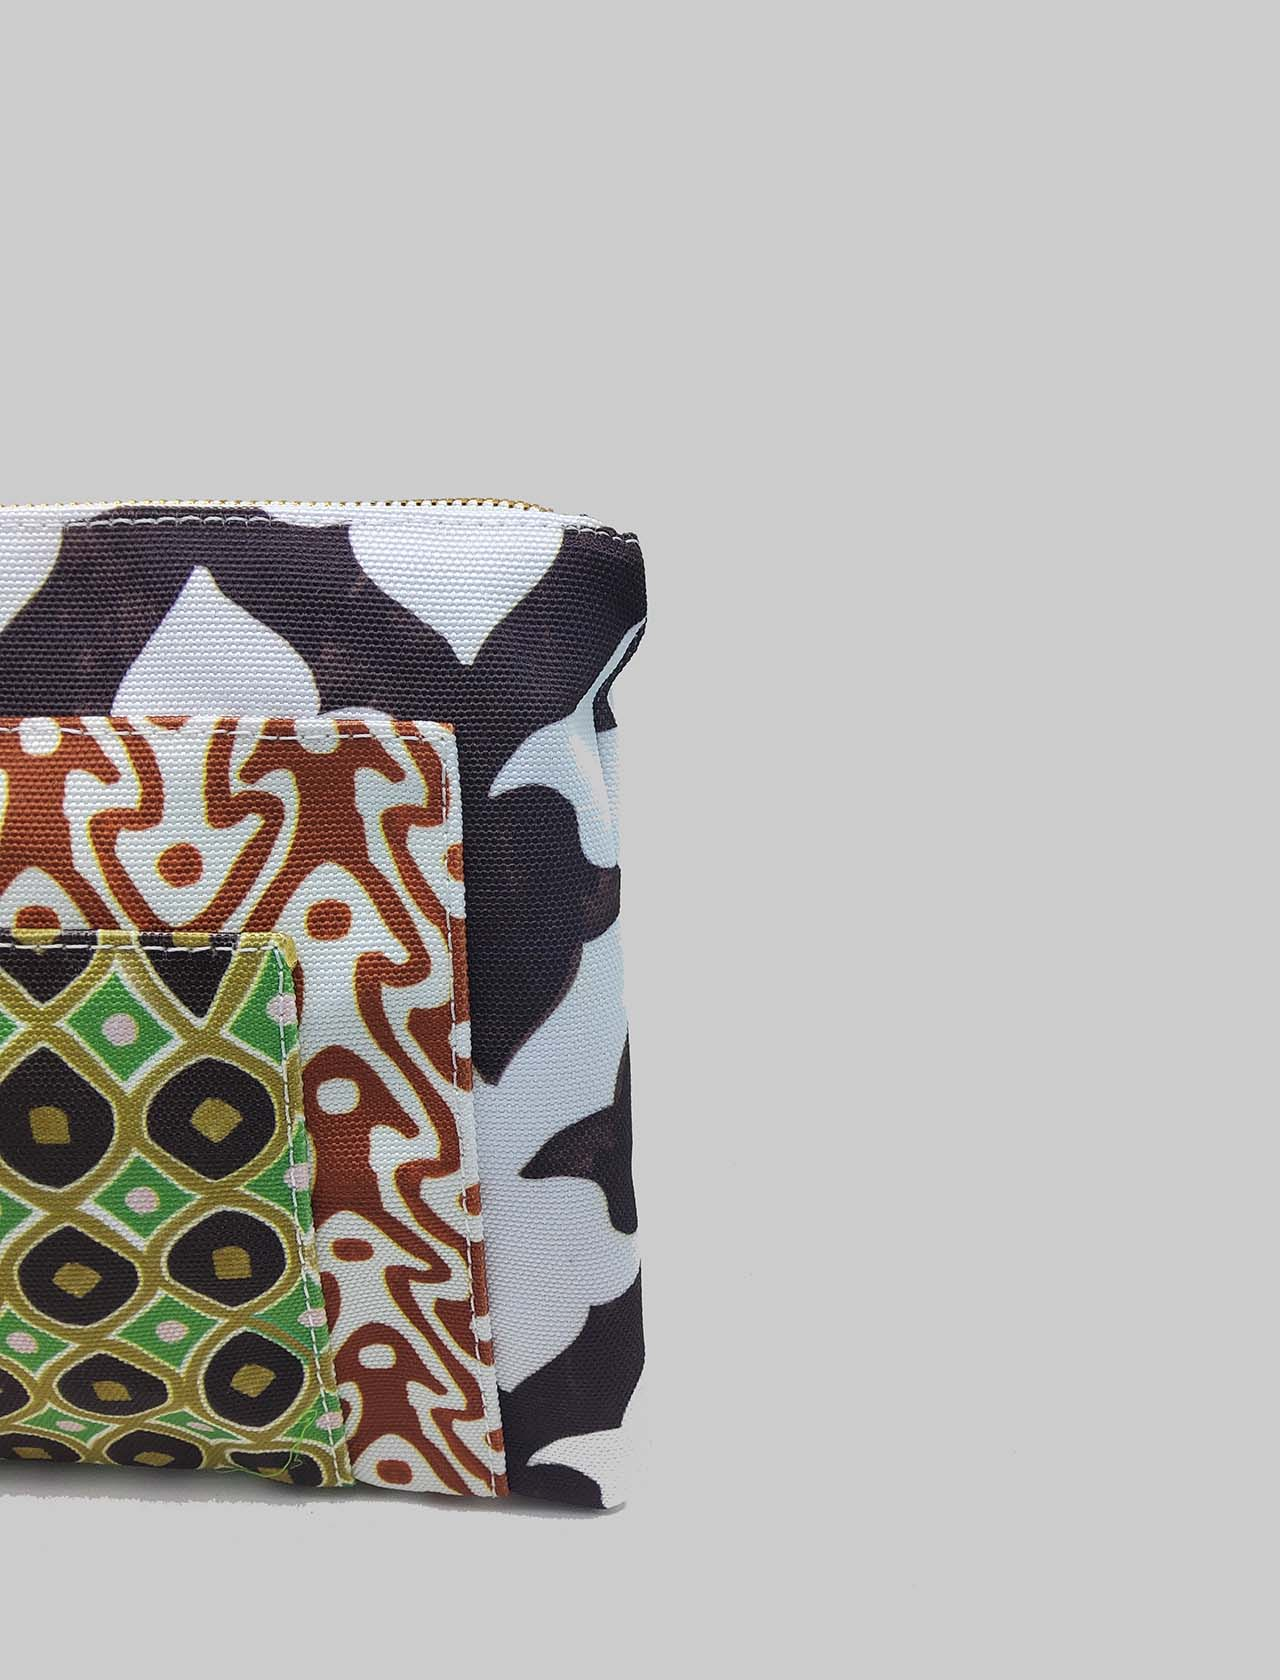 Women's Accessories Pouch Ceres Diamond Print Bag in White and Brown Cotton Maliparmi   Bags and backpacks   OP008660044A1053